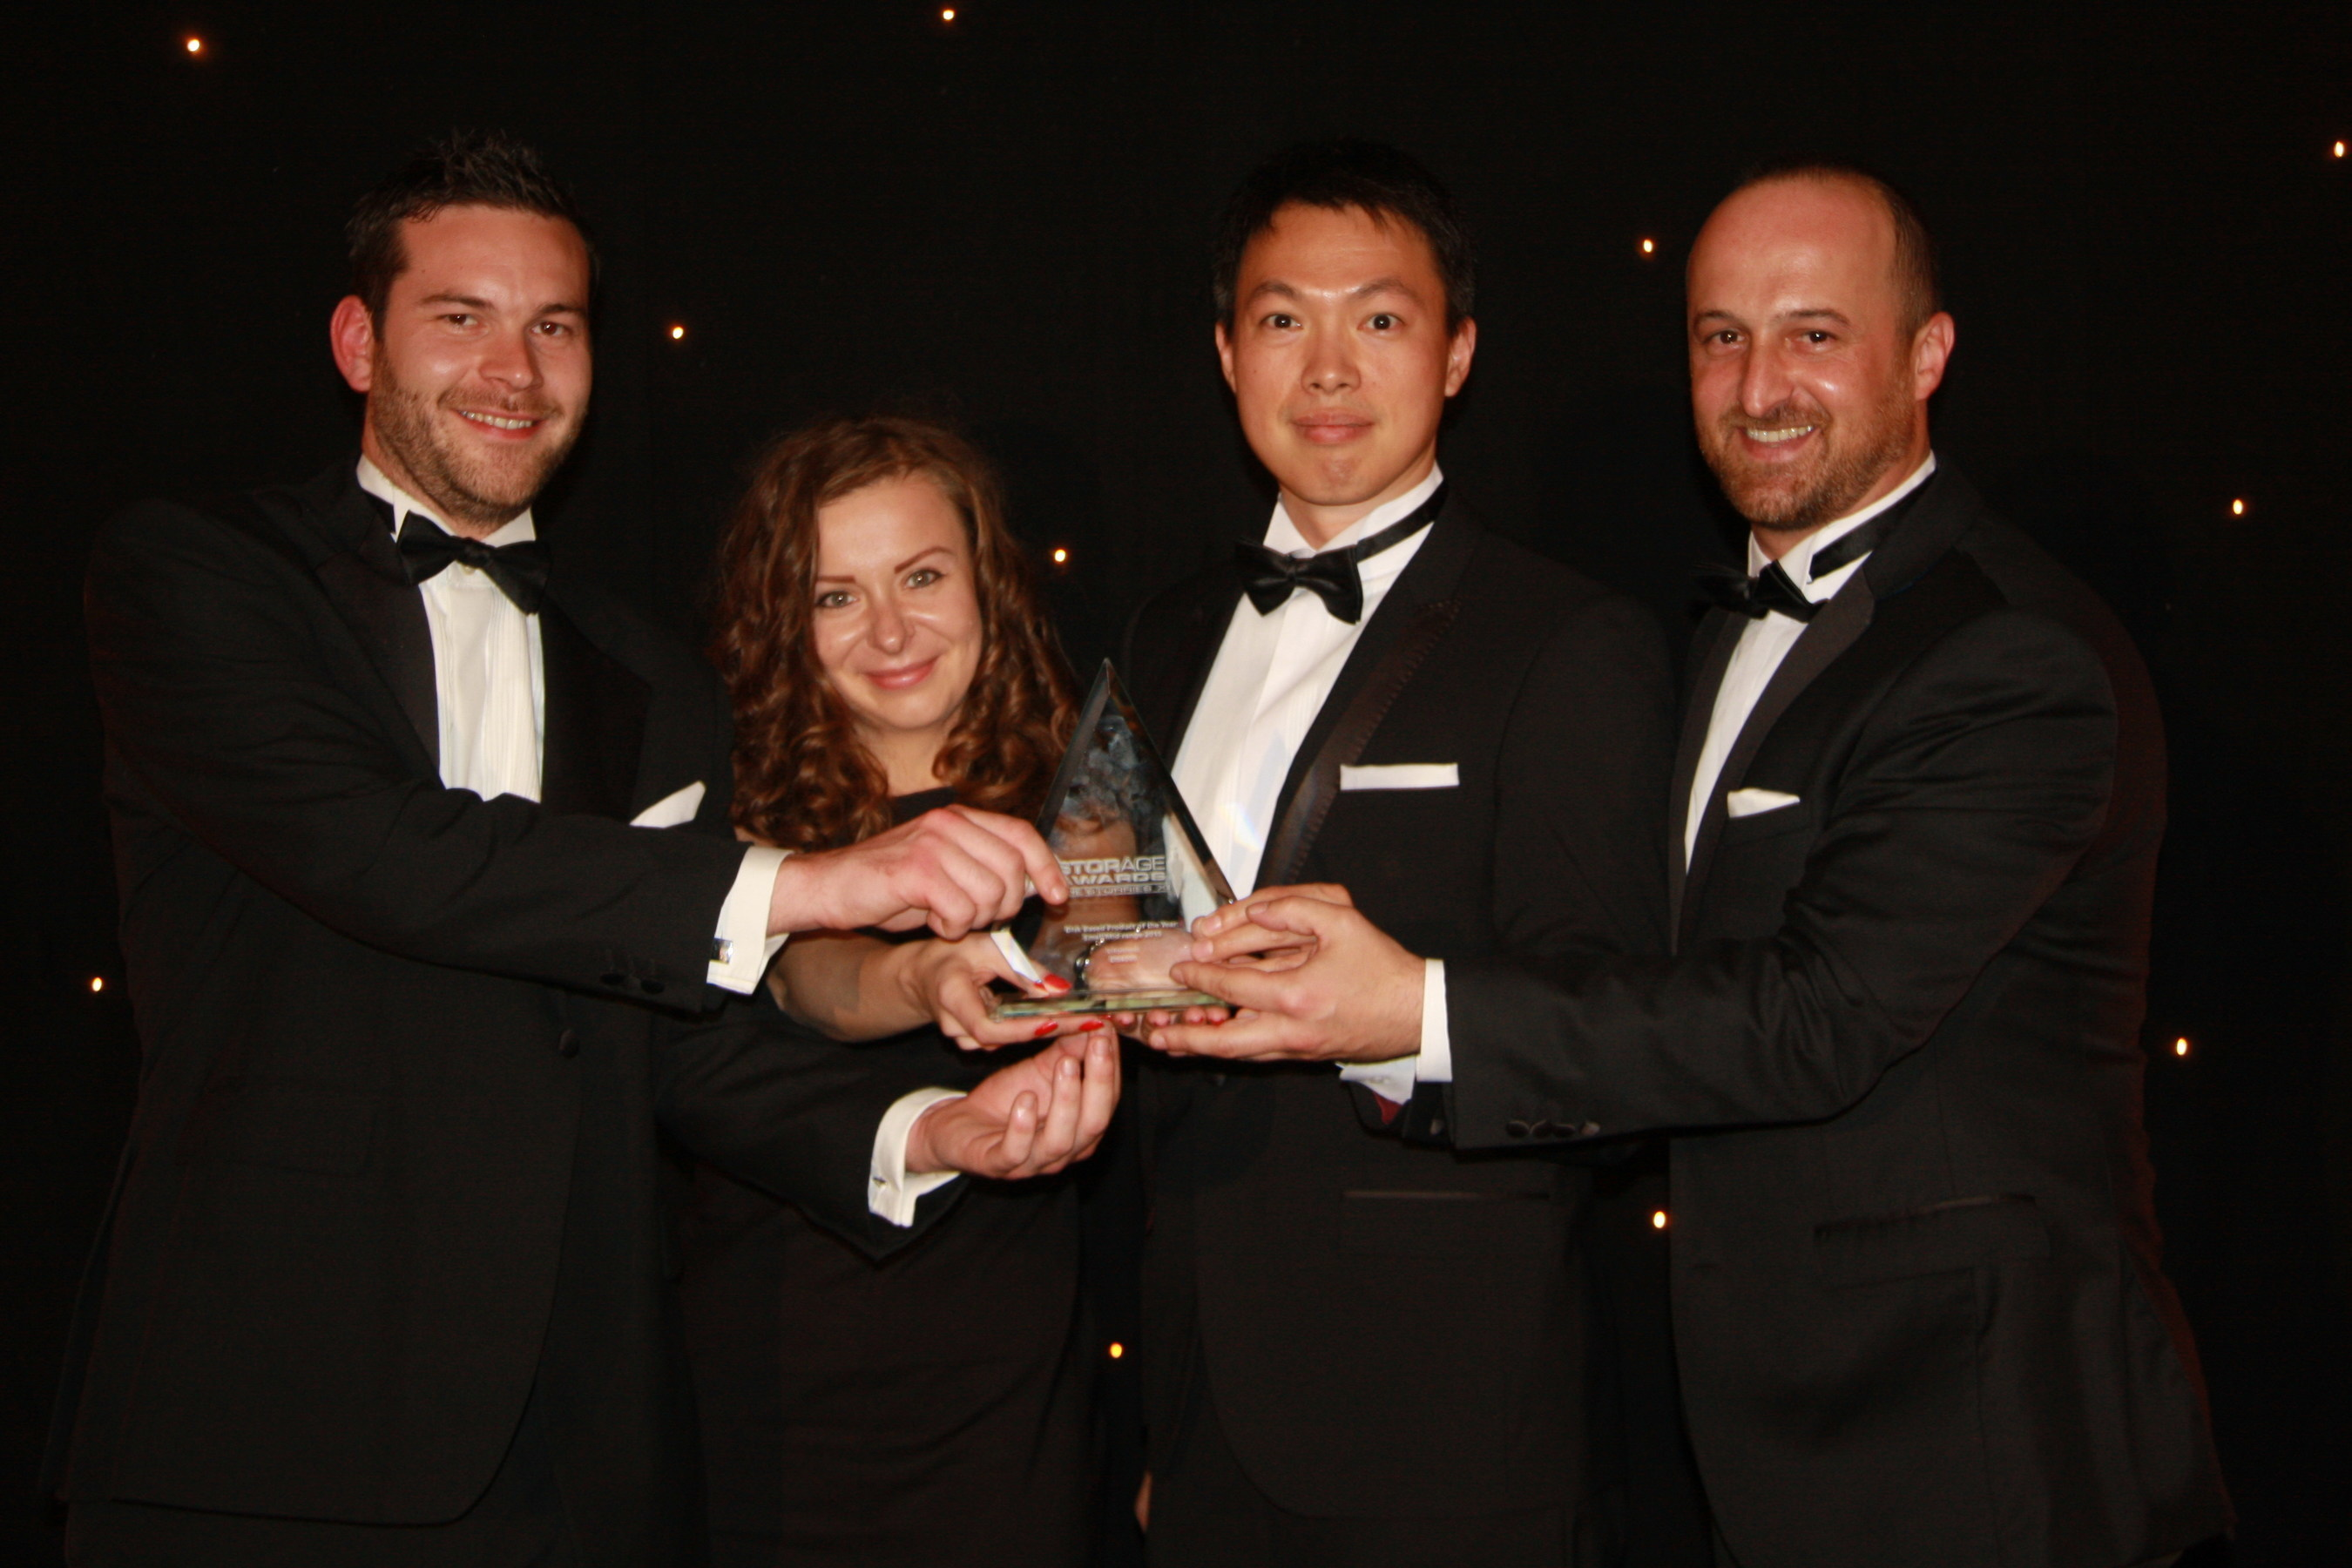 Infortrend EonStor DS 4000 Series Wins 'Disk Based Product of The Year' at Storage Magazine's Storage Awards